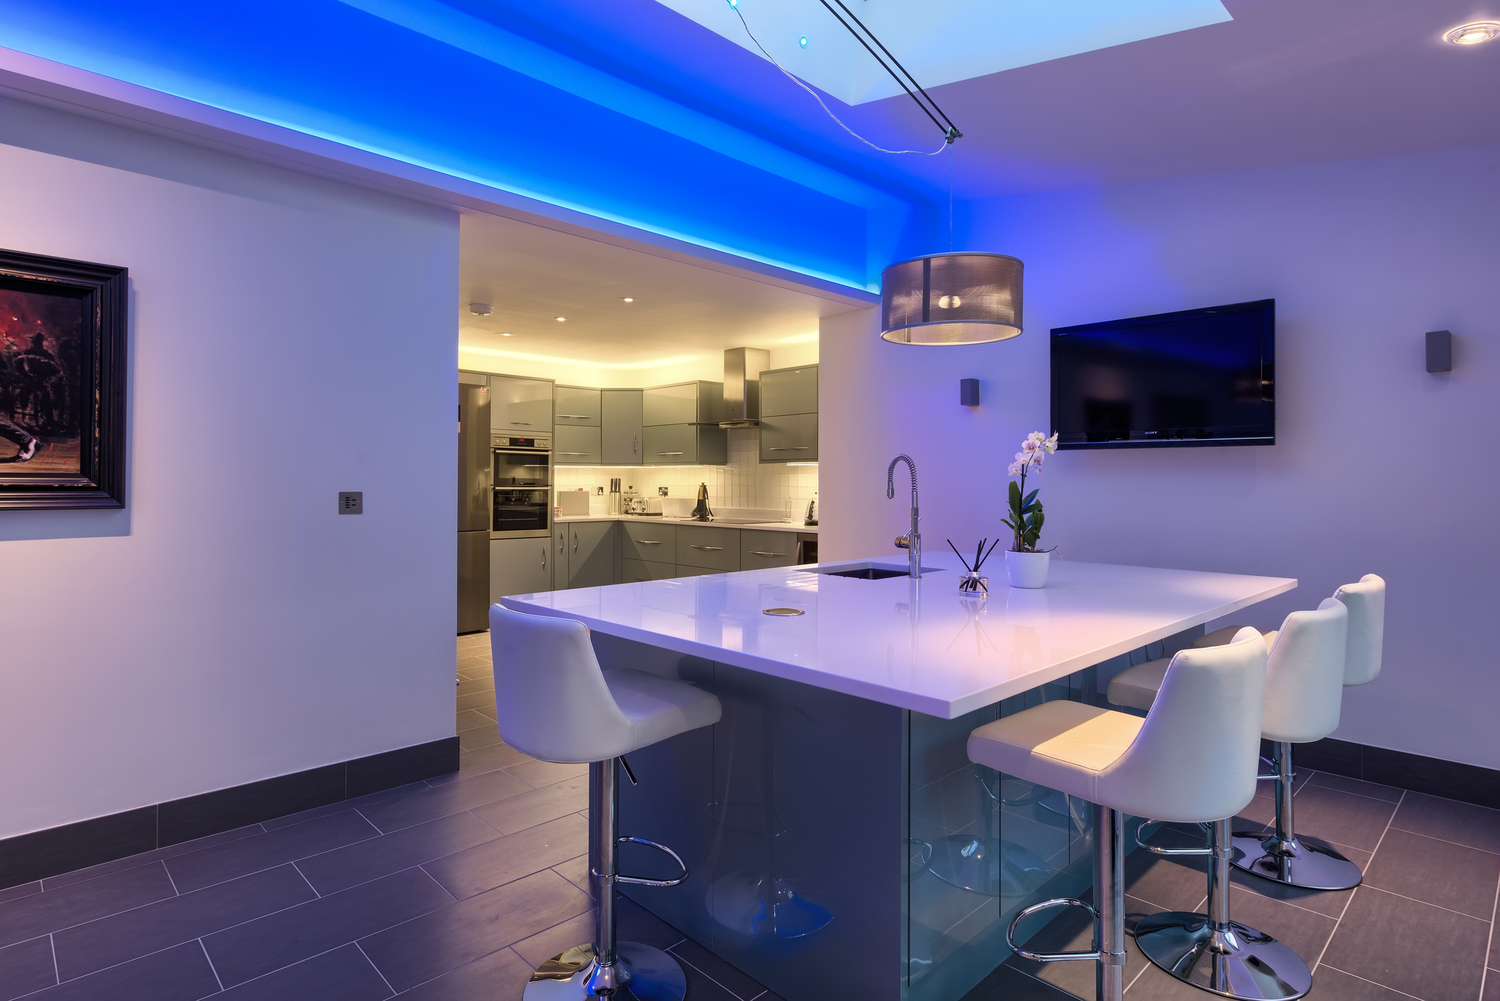 Lighting of a lighting house extension by Harvey Norman Architects Cambridge